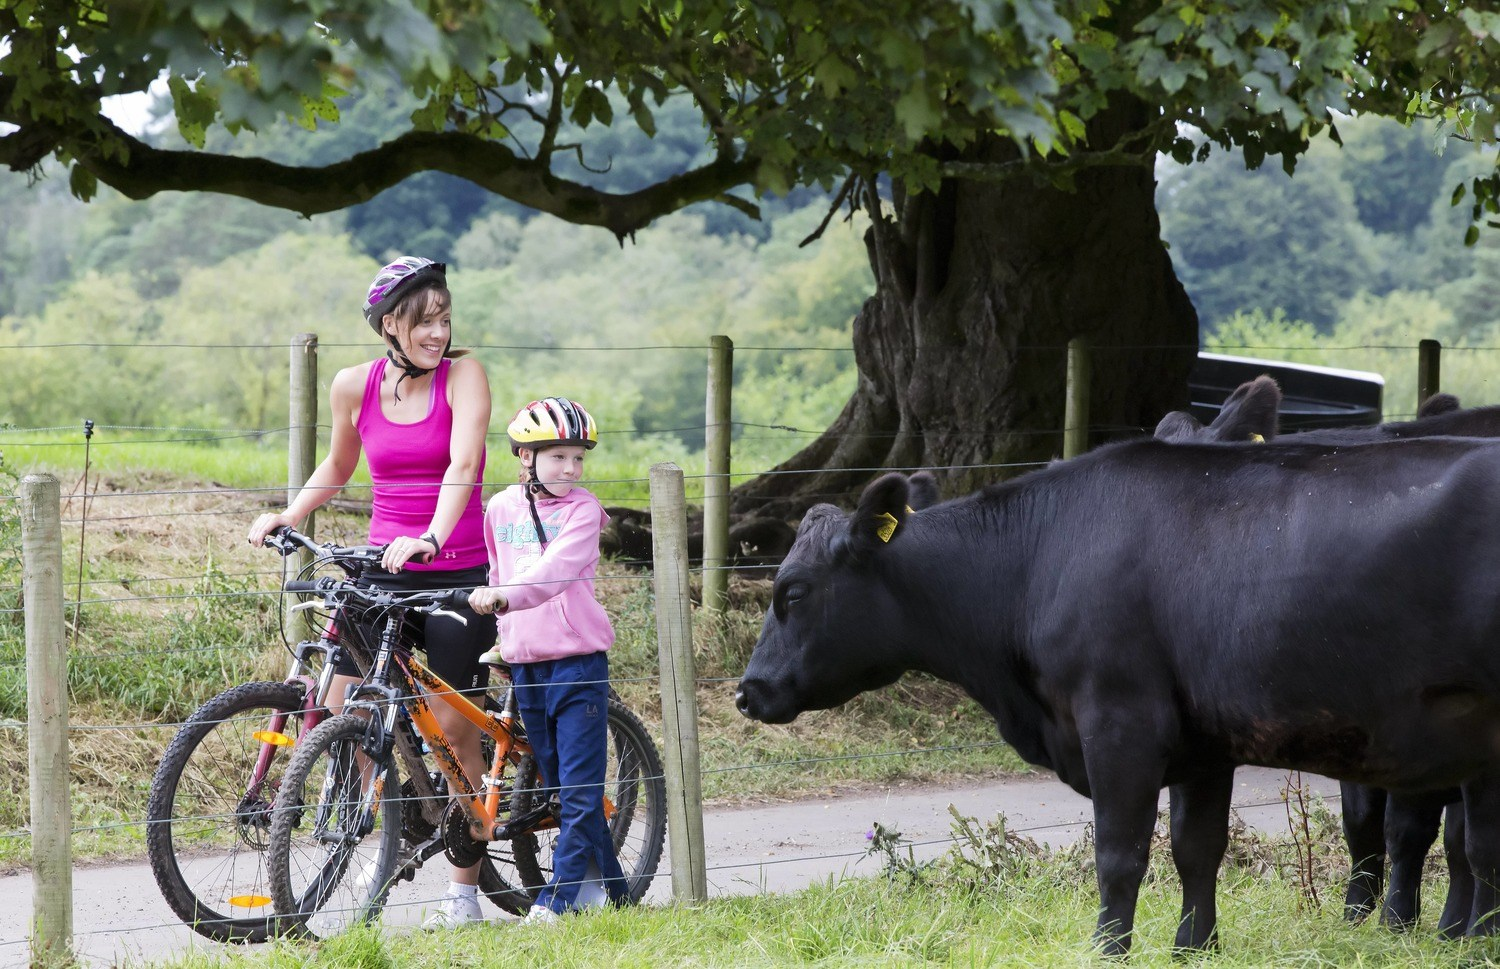 Learn to ride a bike at Blessingbourne Estate Kids Adults beginners experts Mountian bike trails cow mother and child outdoor activity